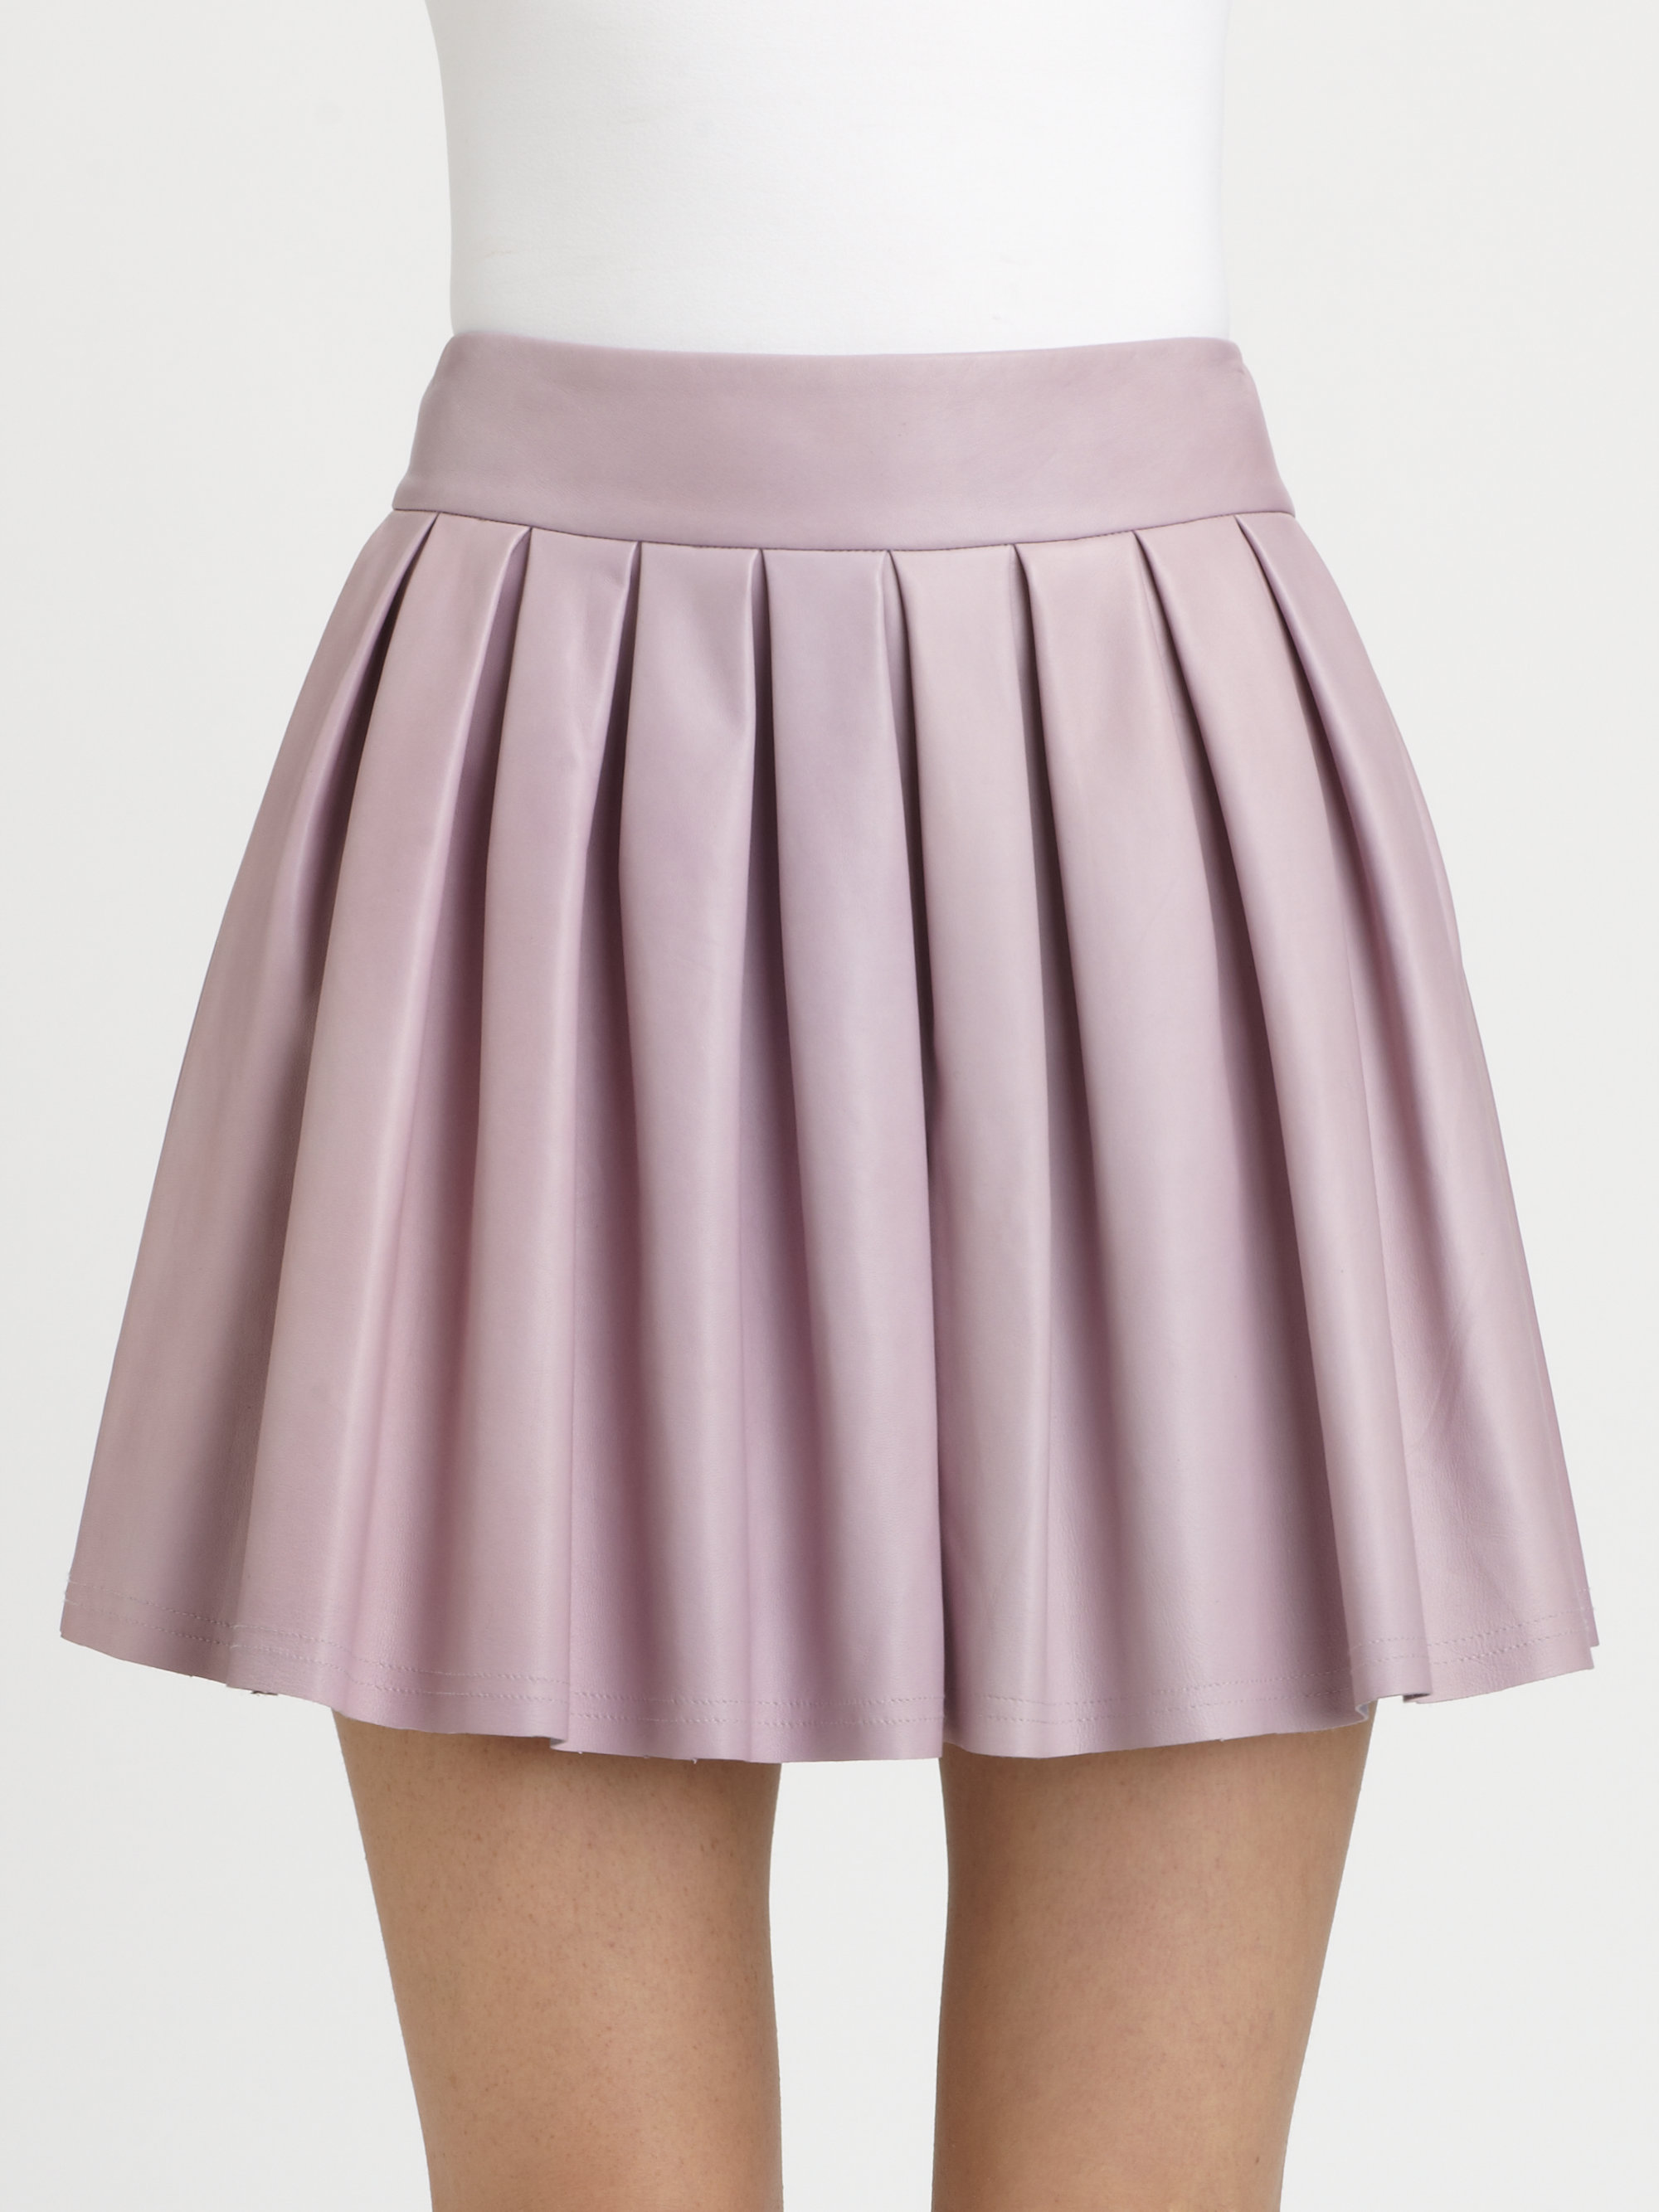 Alice   olivia Box Pleat Leather Skirt in Purple | Lyst